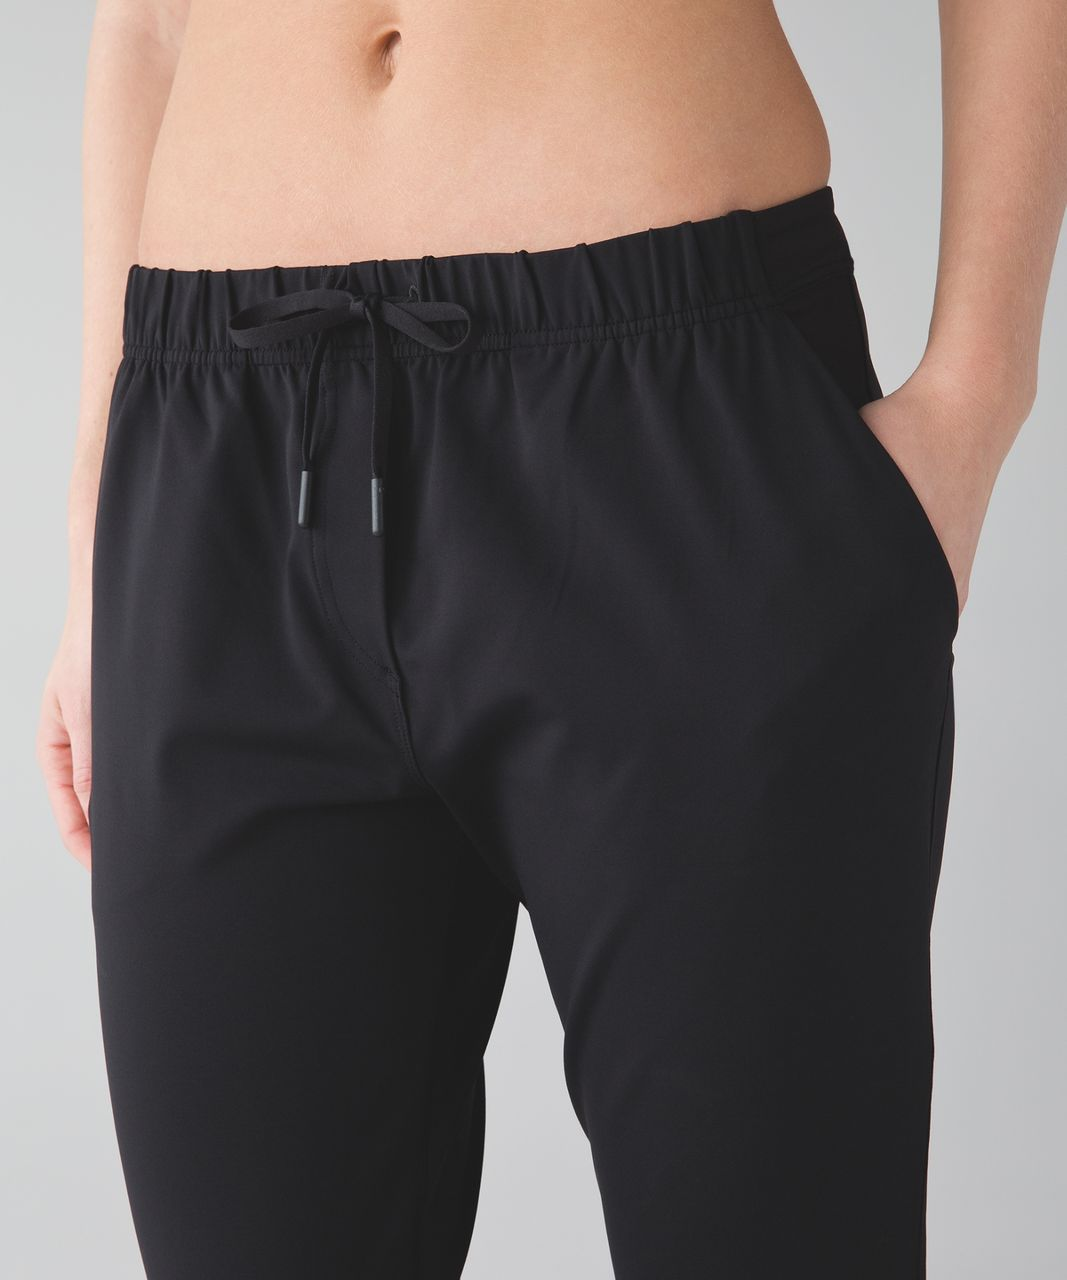 Lululemon Jet Crop (Slim) *Luxtreme - Black